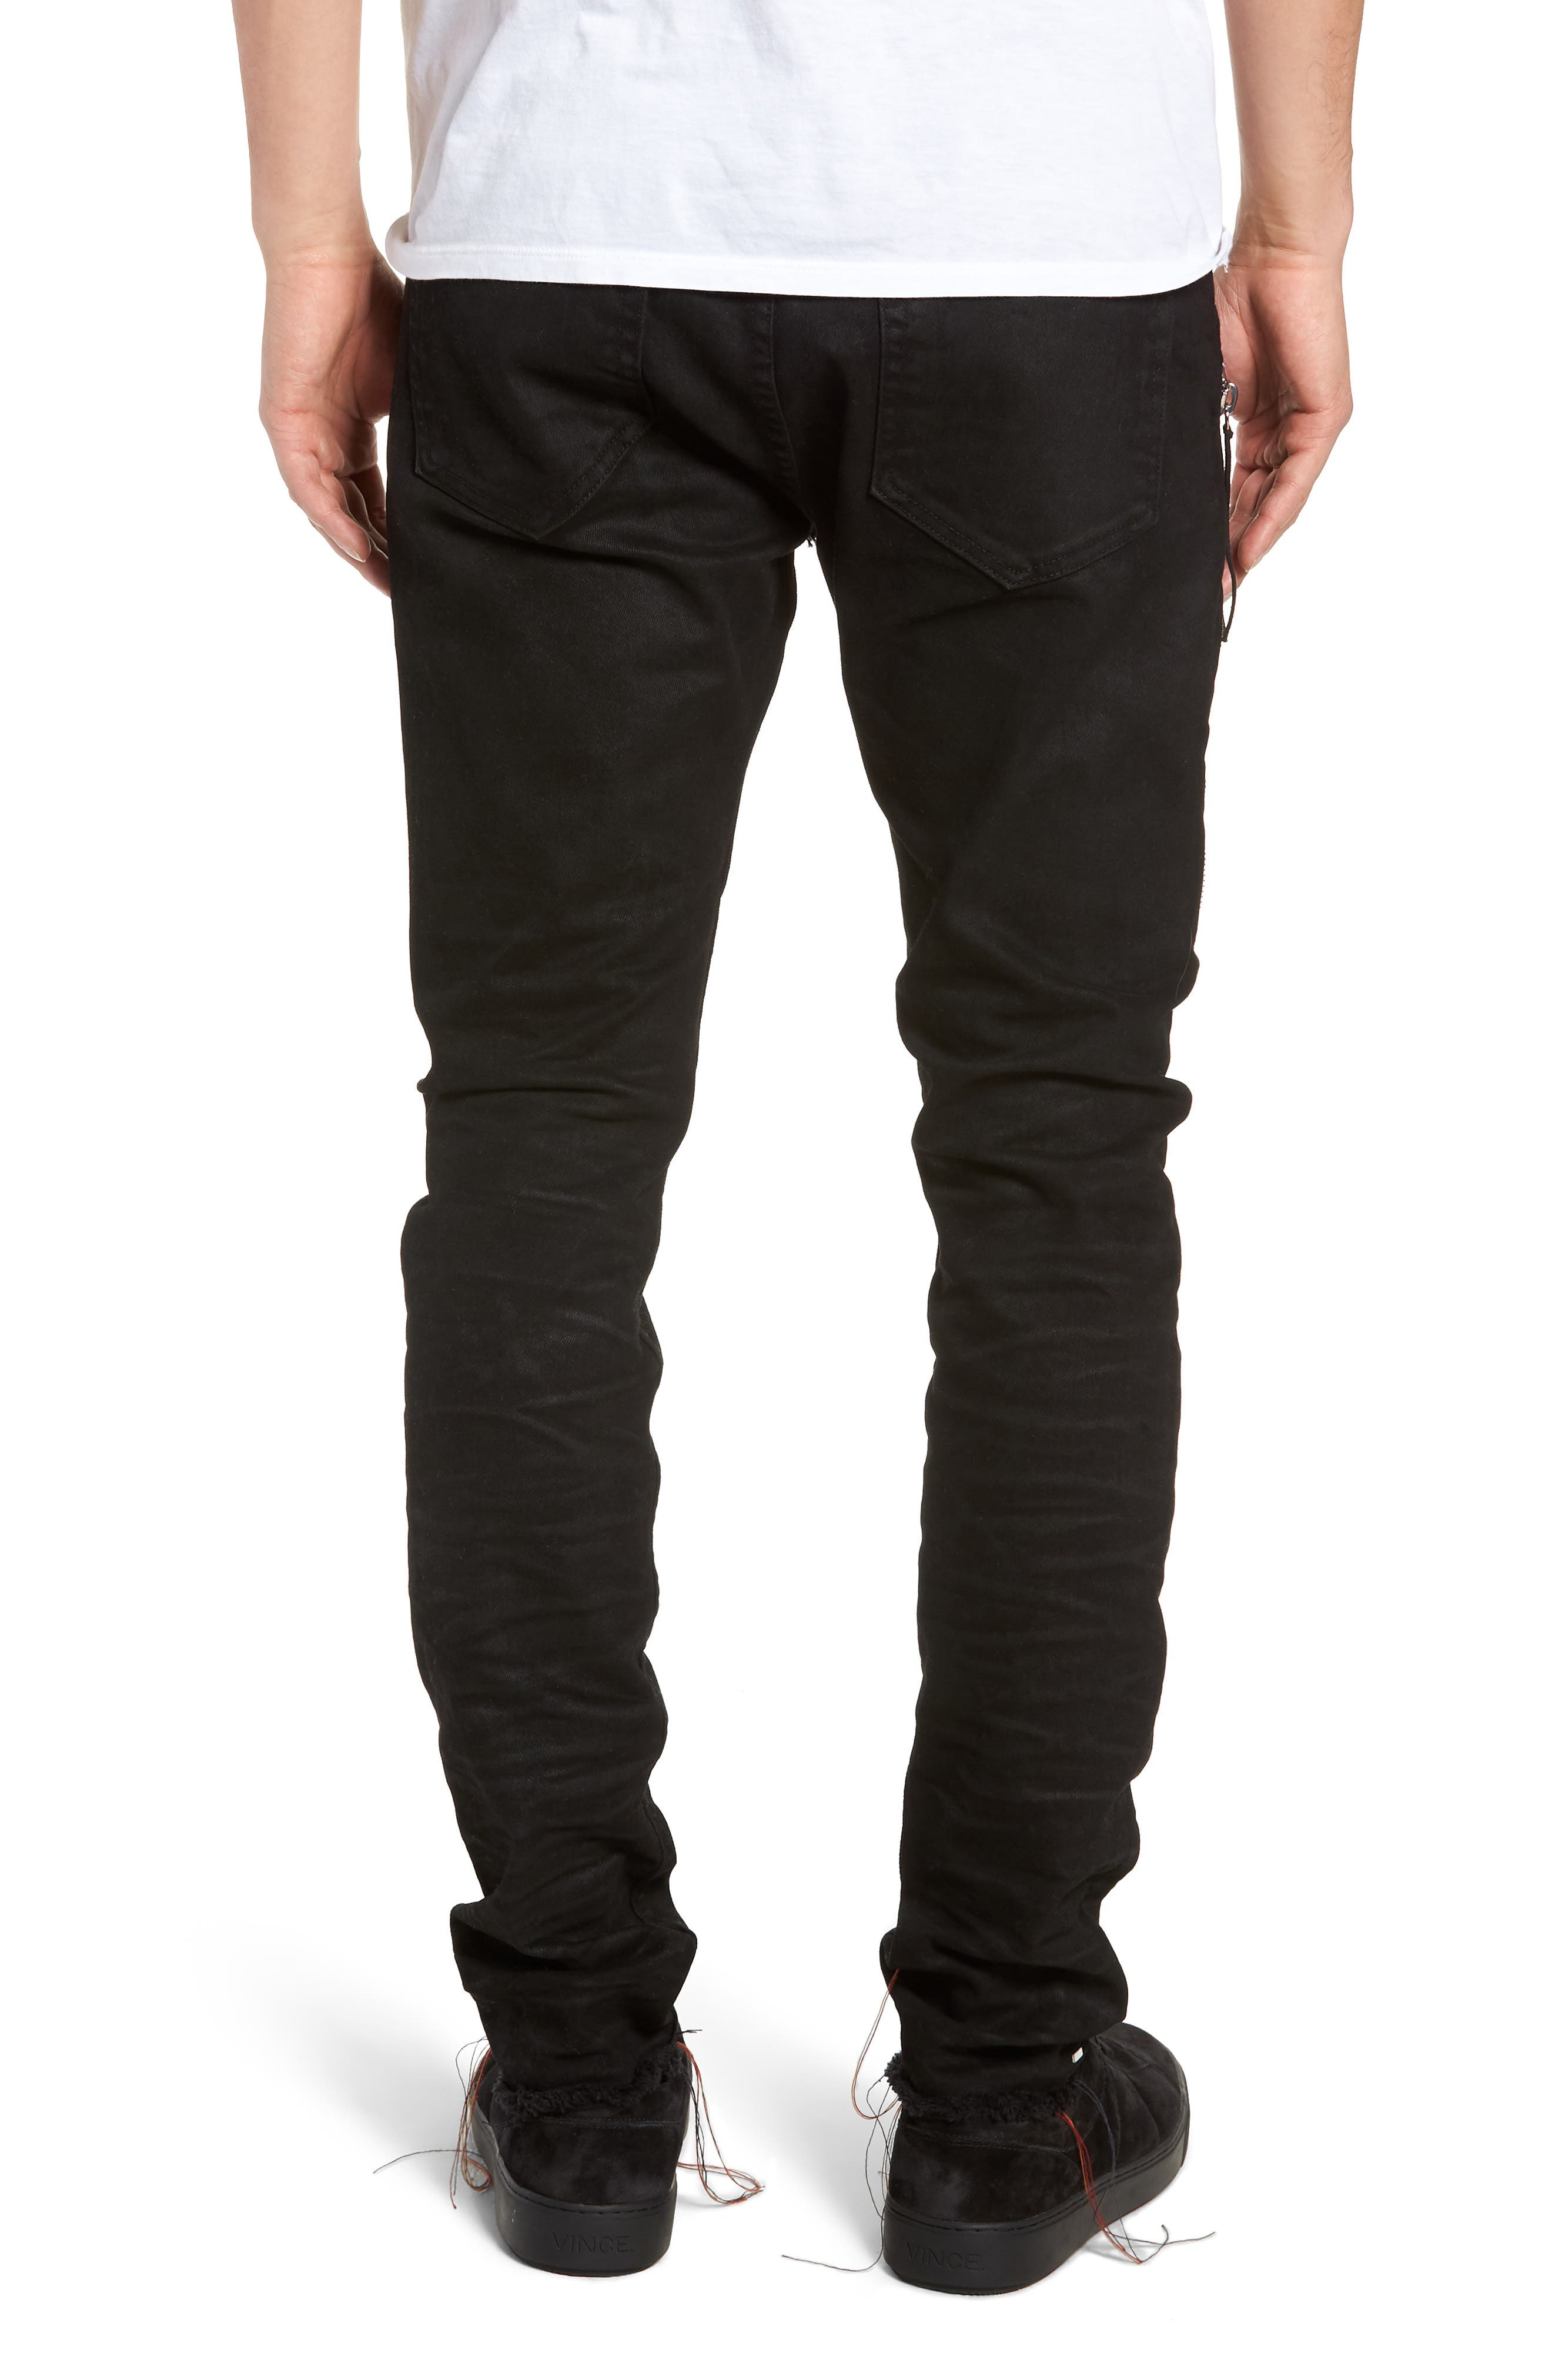 Trafford Skinny Fit Jeans,                             Alternate thumbnail 2, color,                             HERITAGE WAX